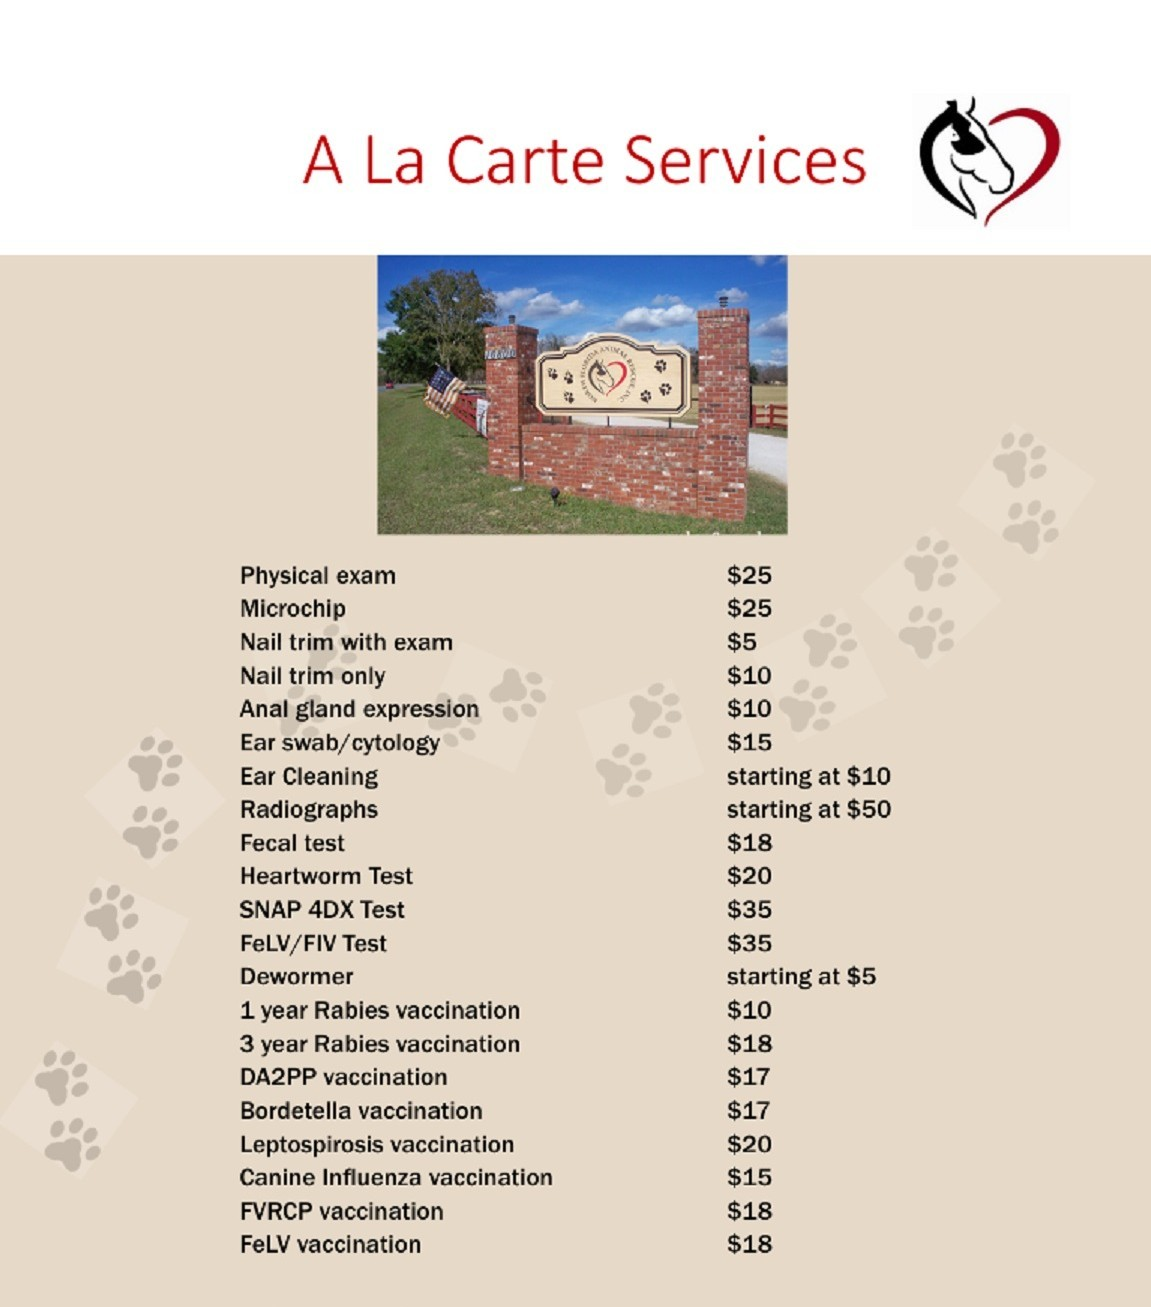 A-La-Carte-Prices-e1407983216690